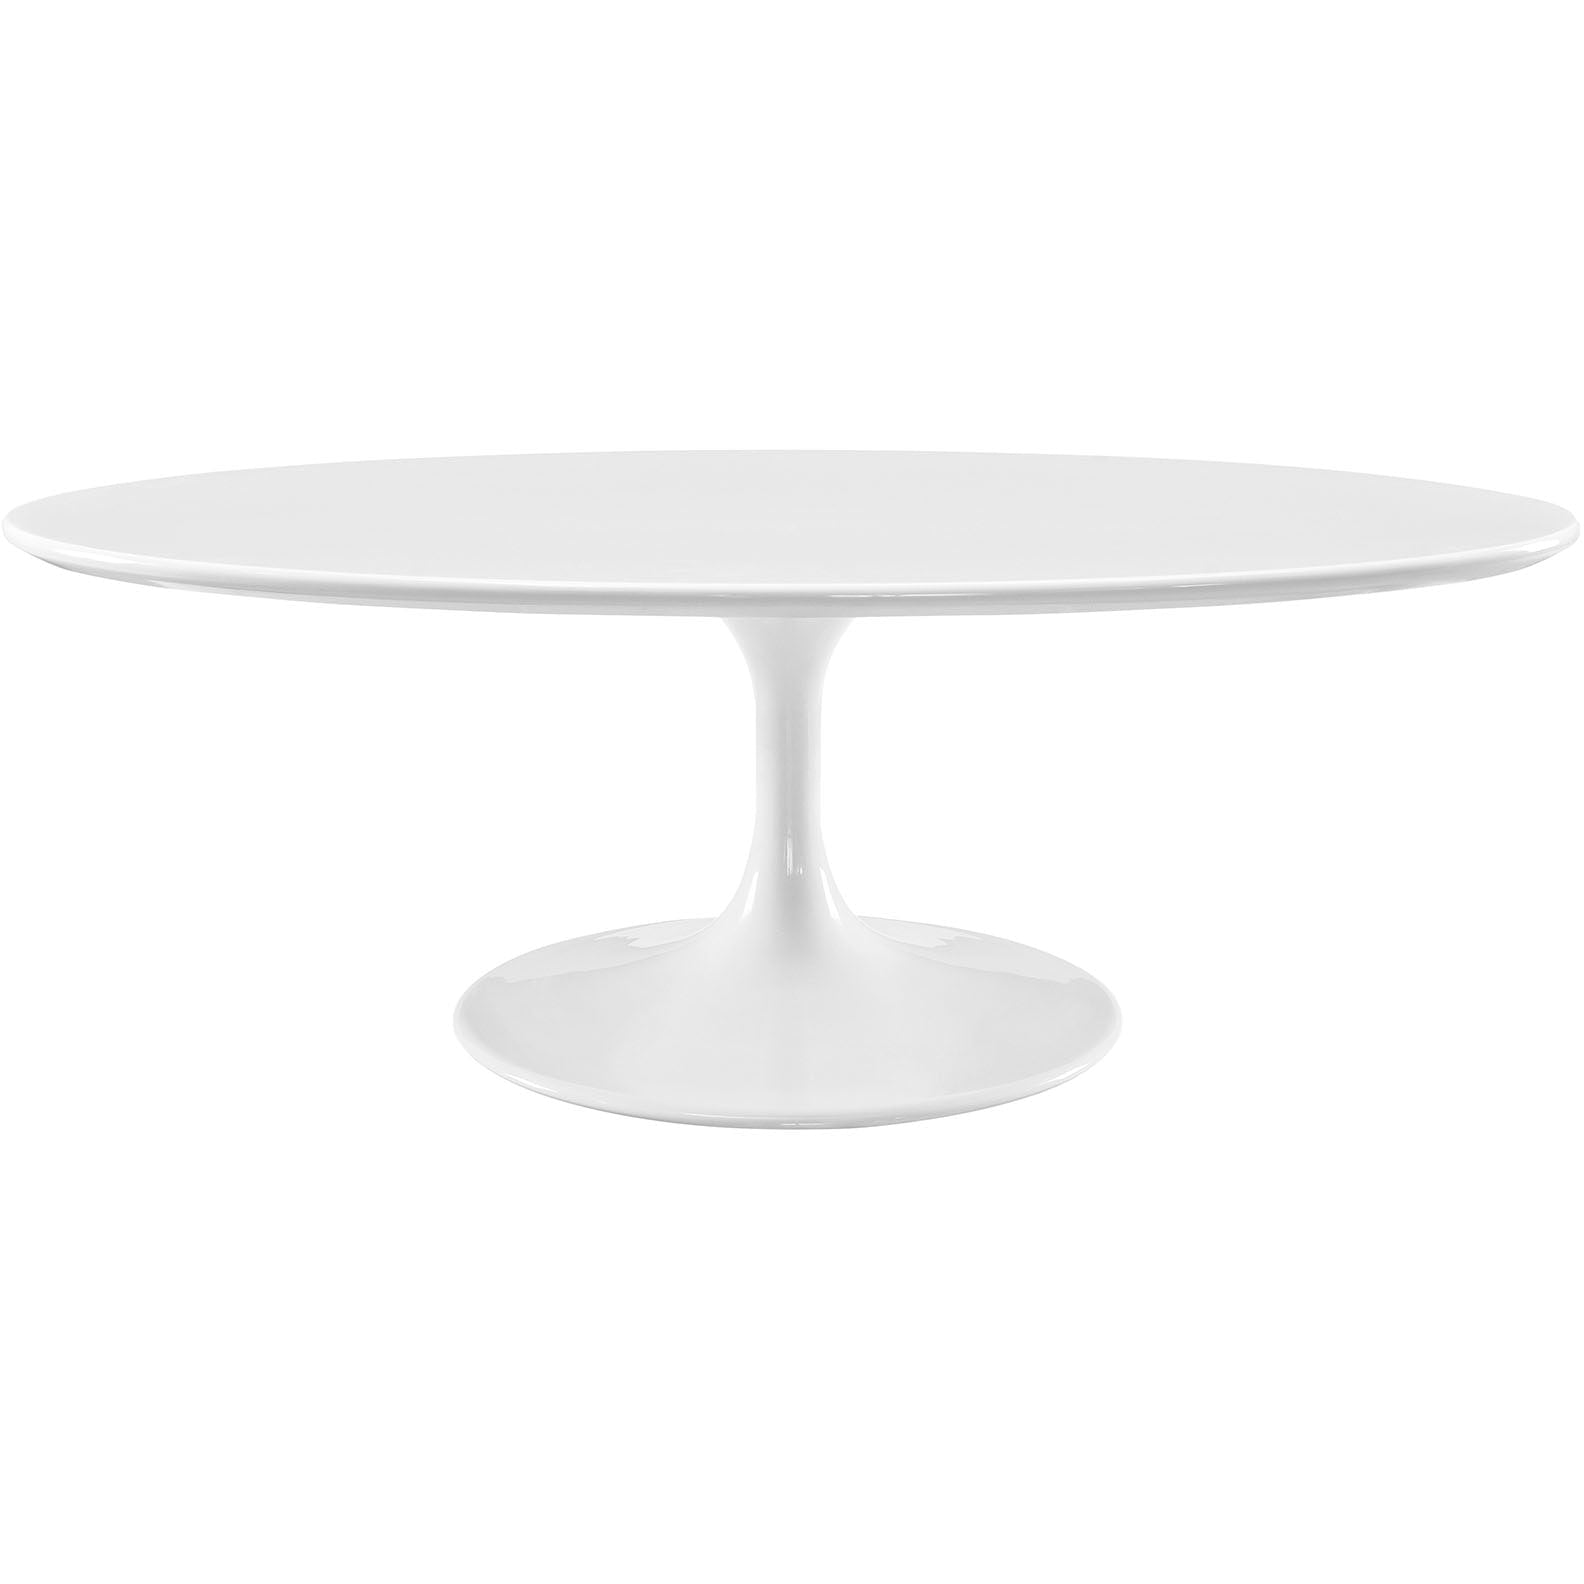 "Lippa 48"" Oval-Shaped Wood Top Coffee Table - White"